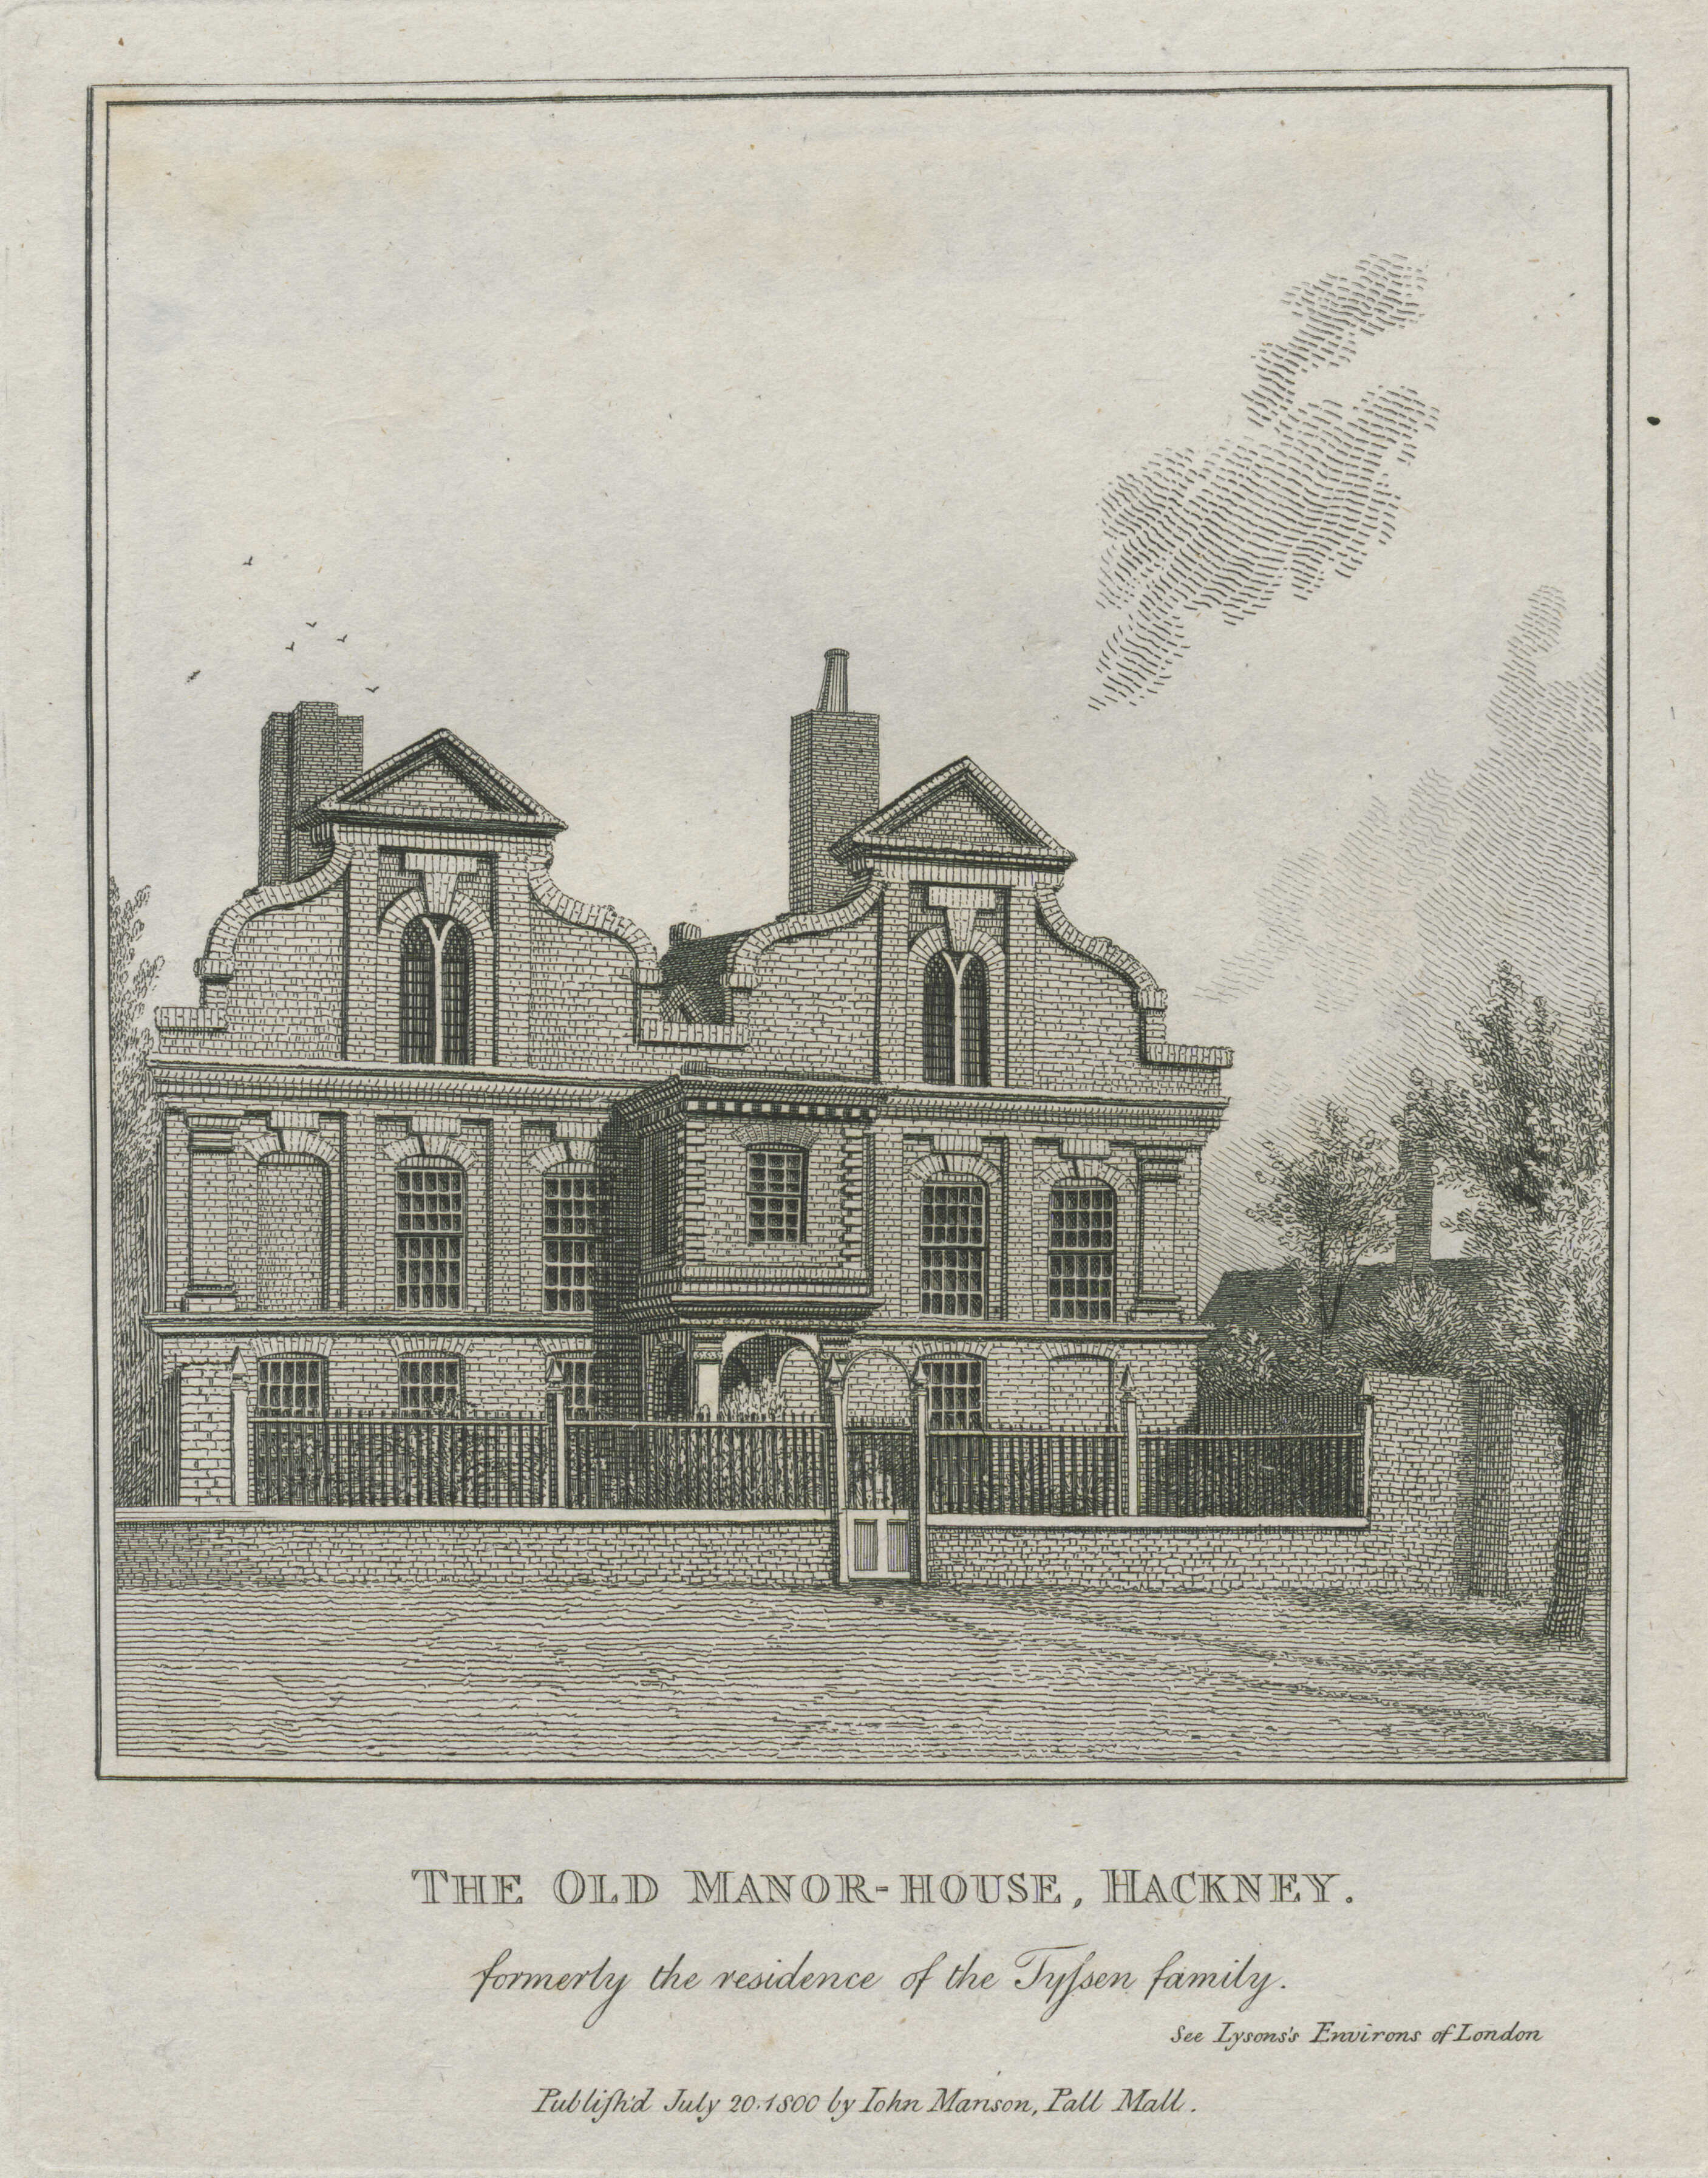 83-the-old-manor-house-hackney-formerly-the-residence-of-the-tyssen-family